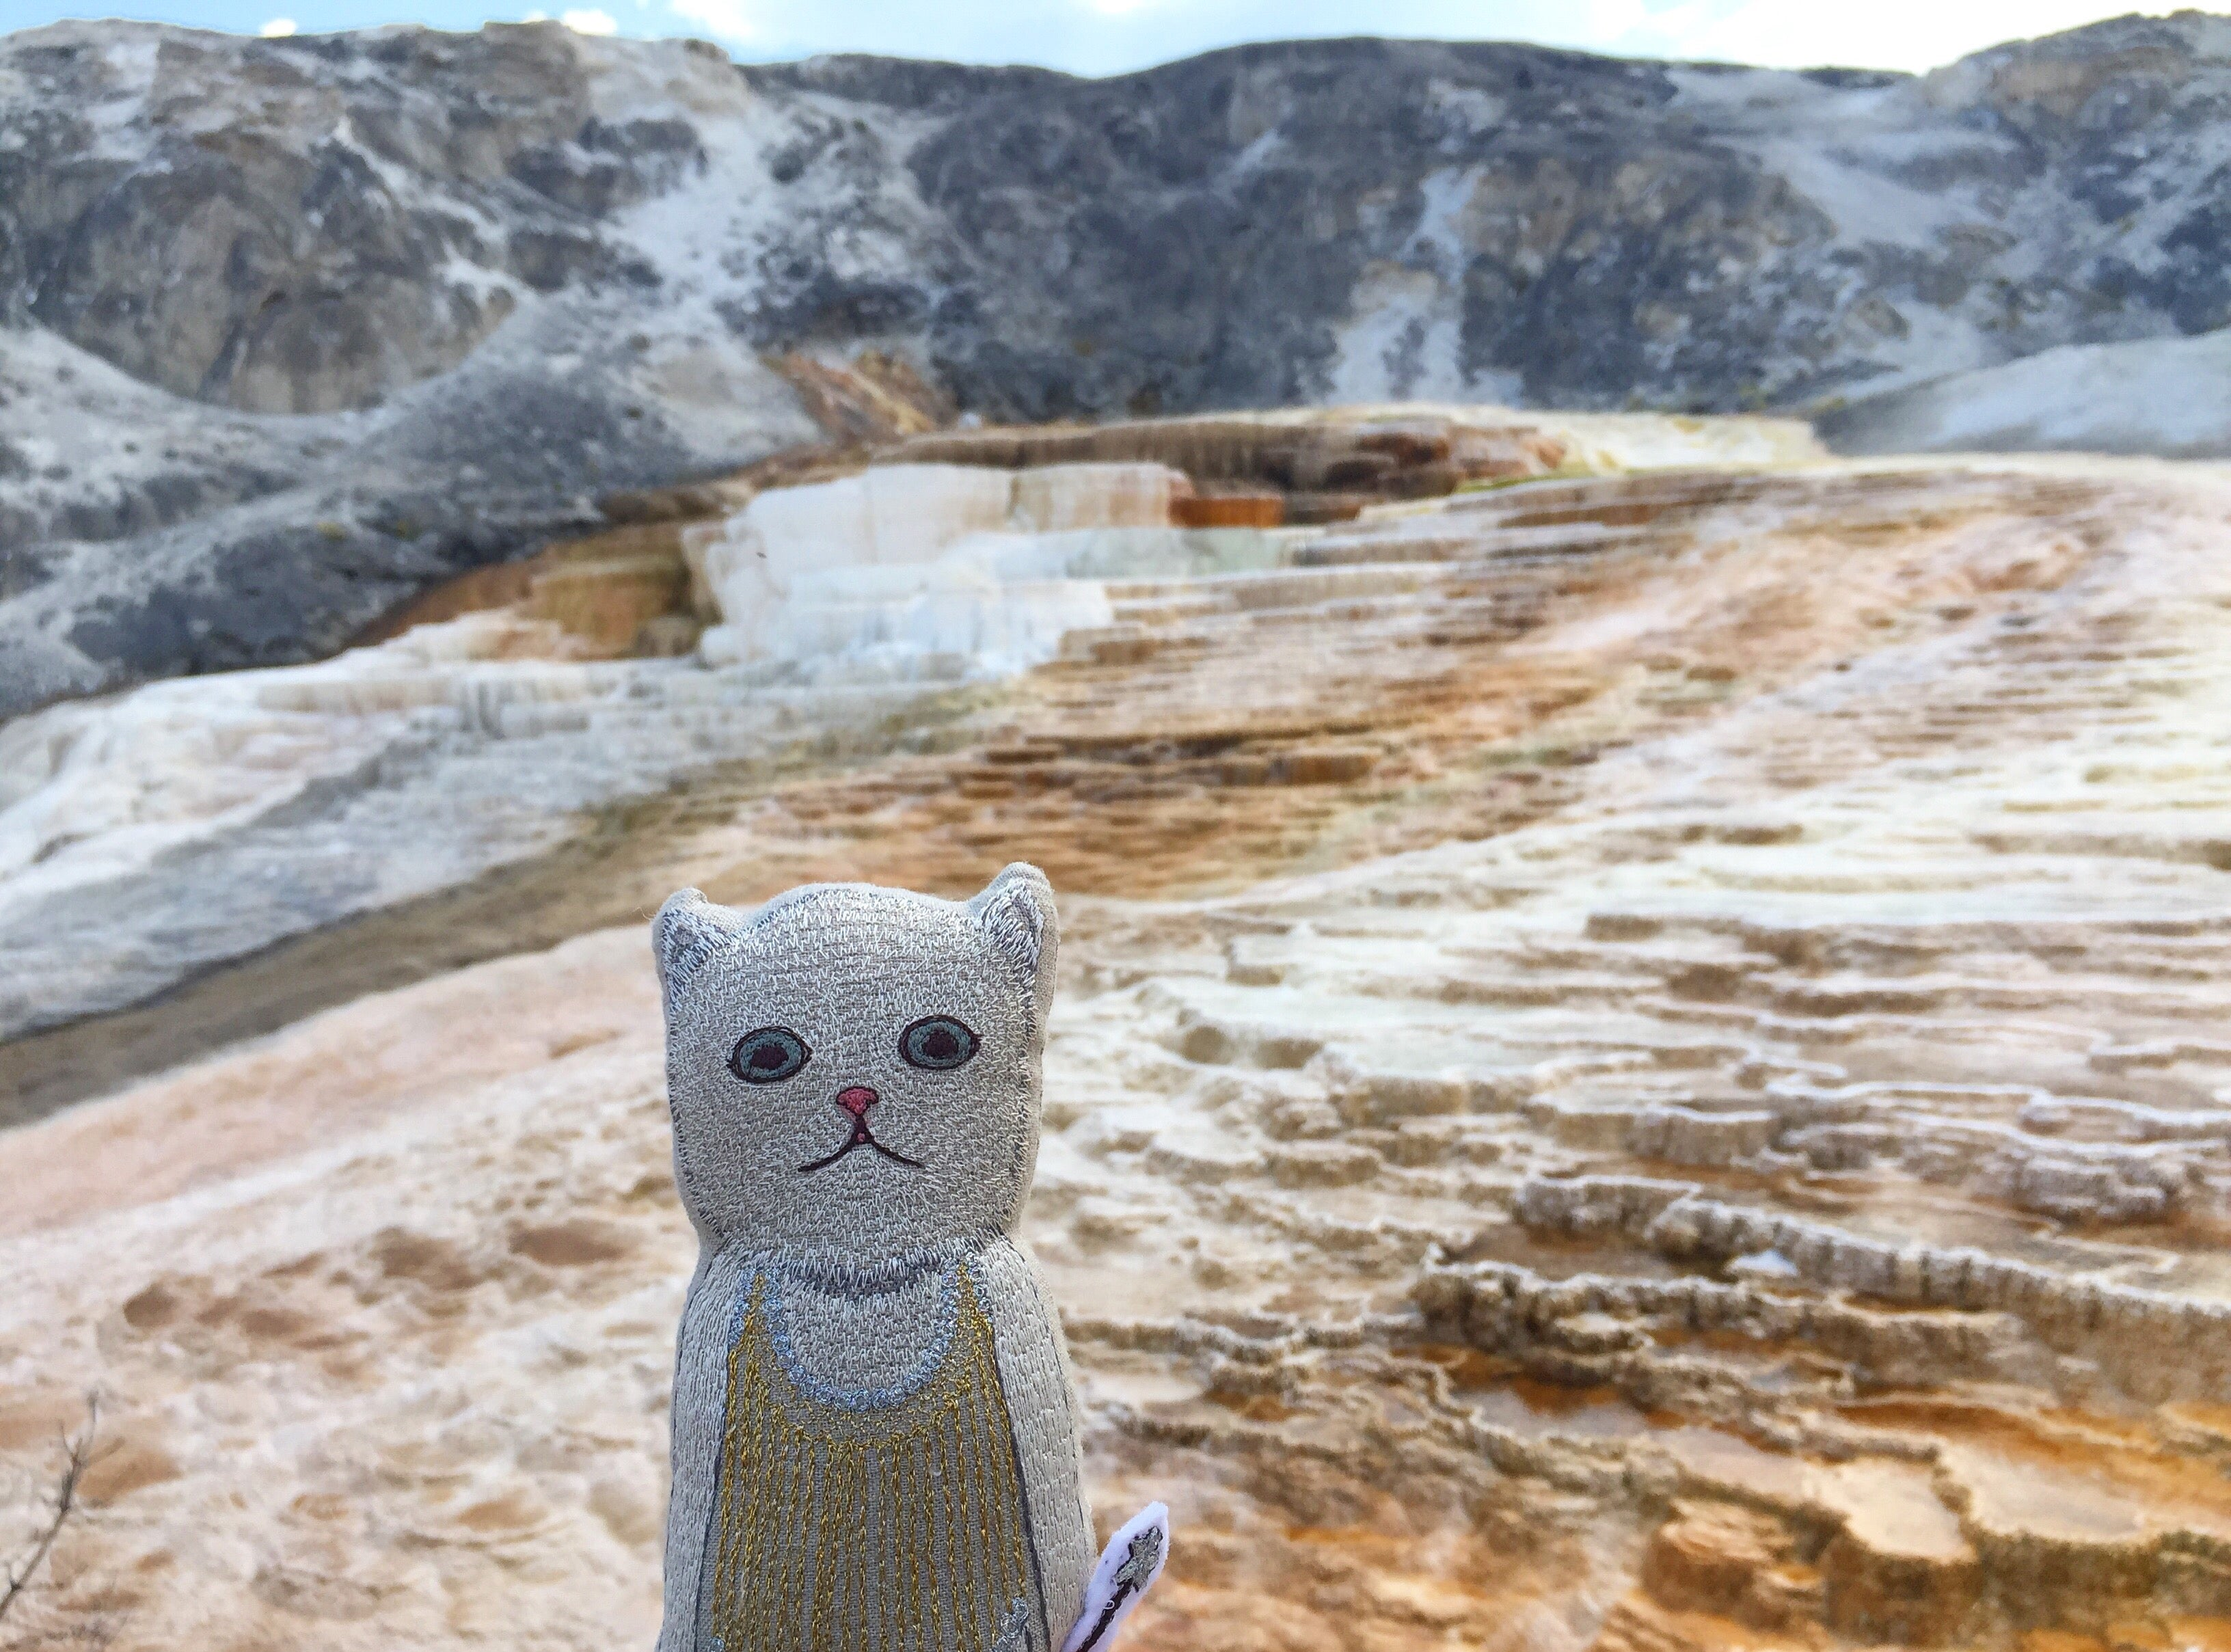 Coral & Tusk Baby Cat Pocket Doll at Mammoth Hot springs, Yellowstone National Park